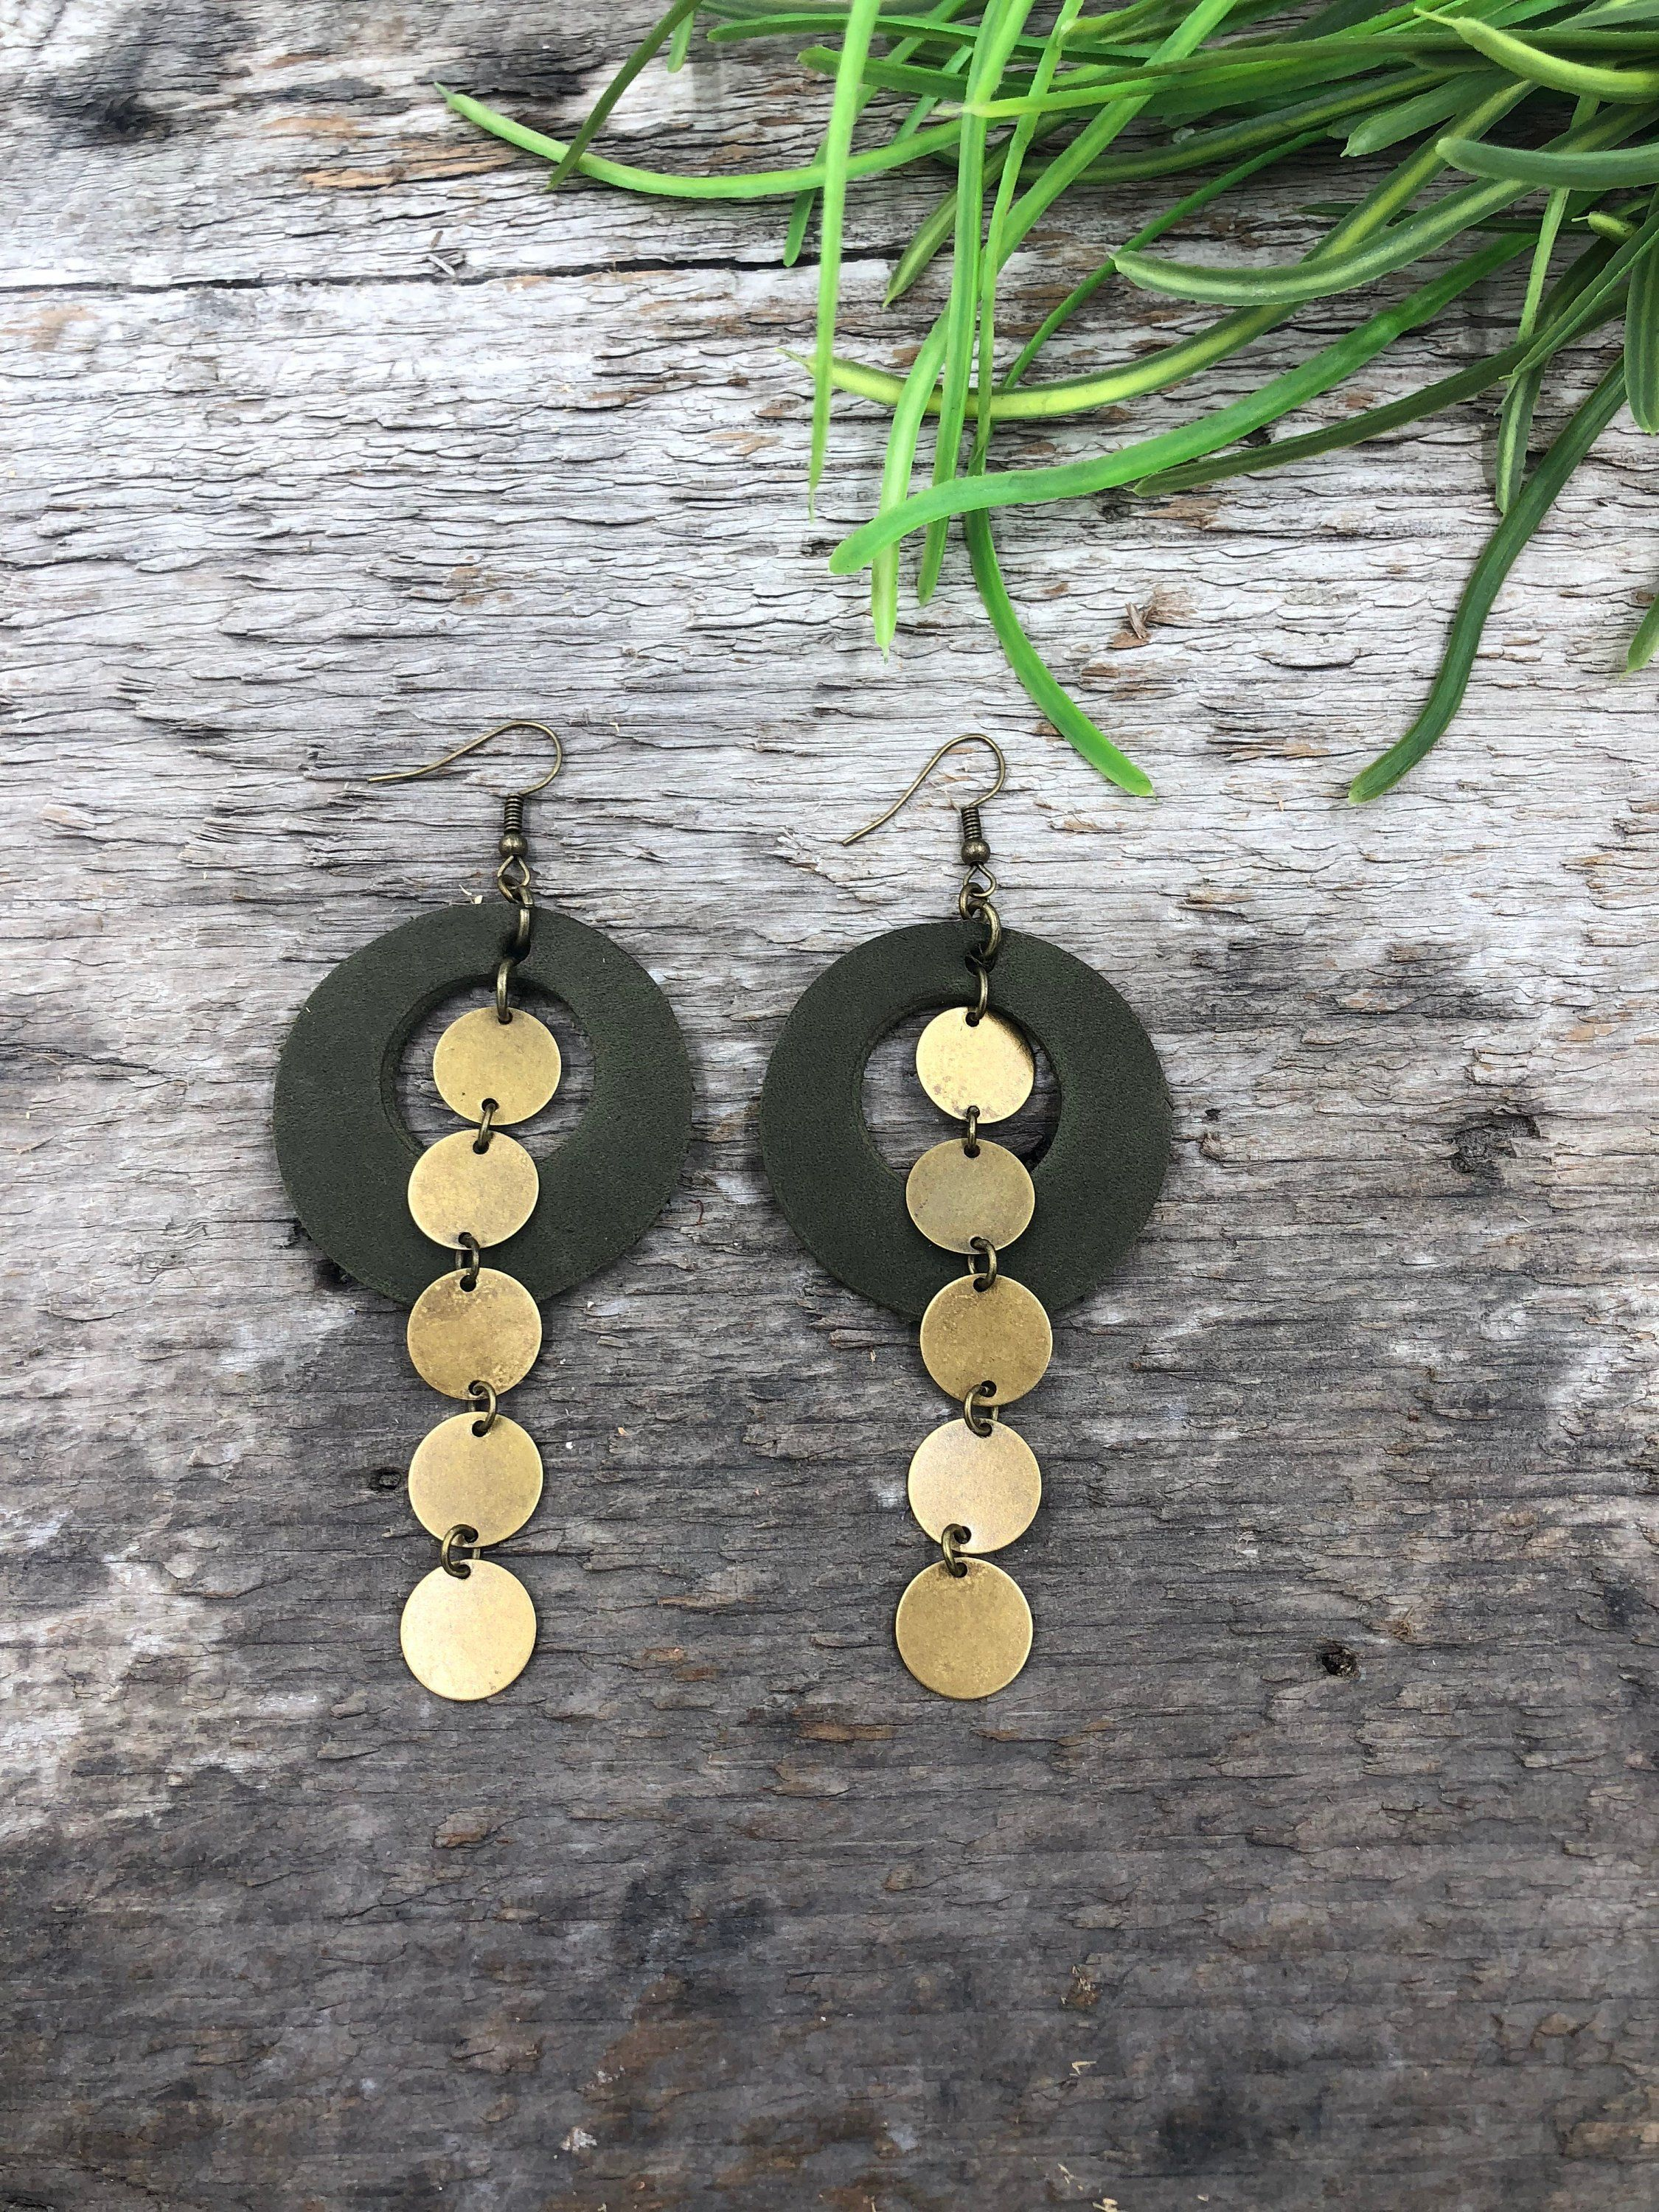 Photo of Statement earrings/statement jewelry/stocking stuffer/Christmas gift/leather earrings/leather jewelry/birthday gift/boutique jewelry/boho